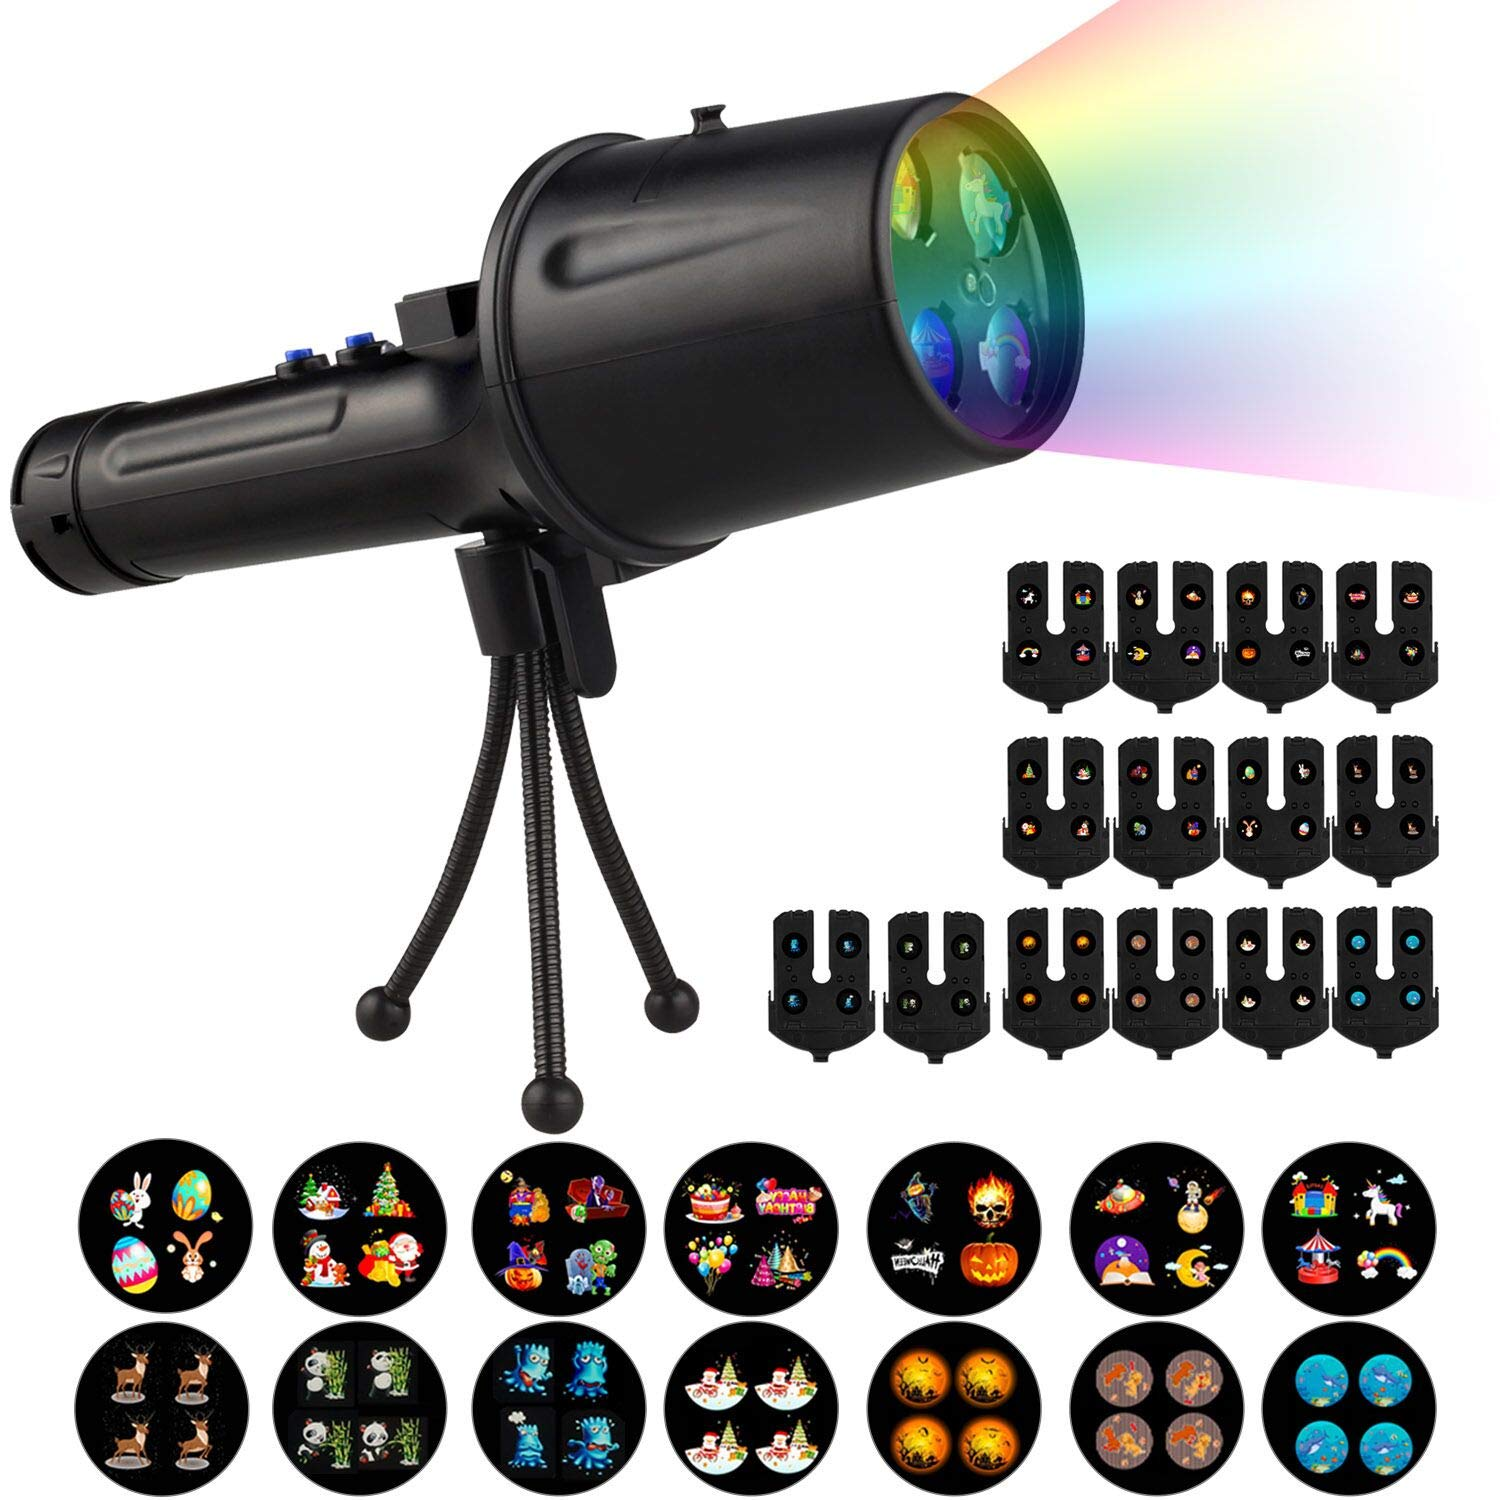 Christmas Animated Decorative Projector Lights - Portable Projector Flashlight with Tripod, Led Spotlight Projector Flashlight with 14 Slides, Night Lights for Kids, Party, Garden, Outdoor